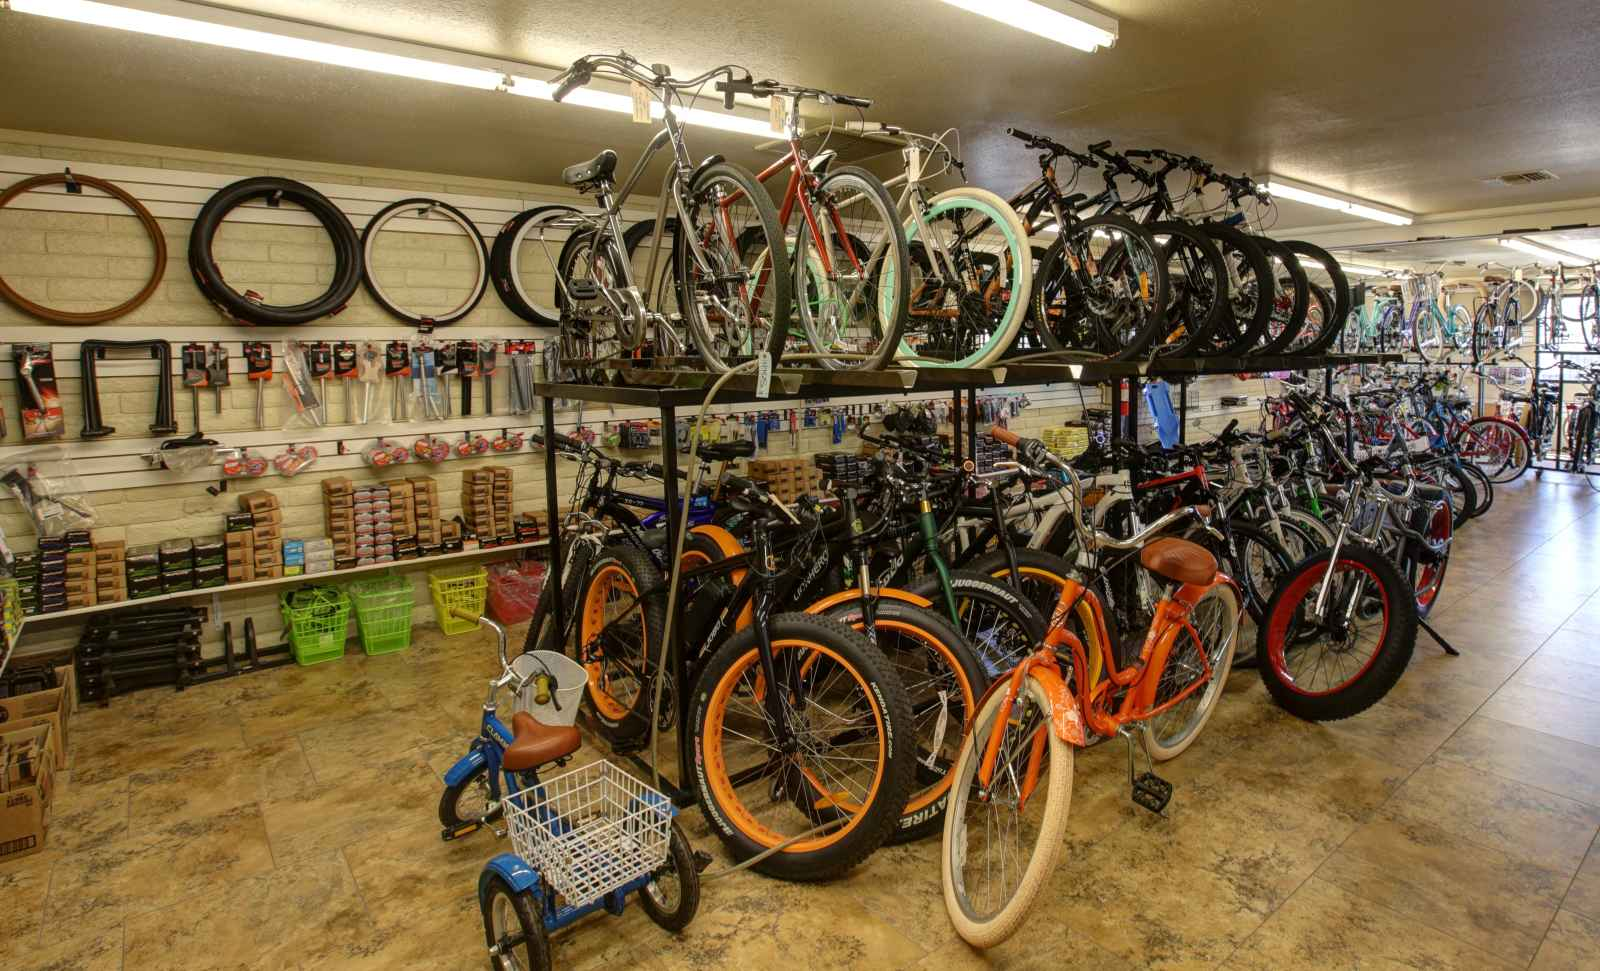 Mesa bike store, parts & accessoriesz